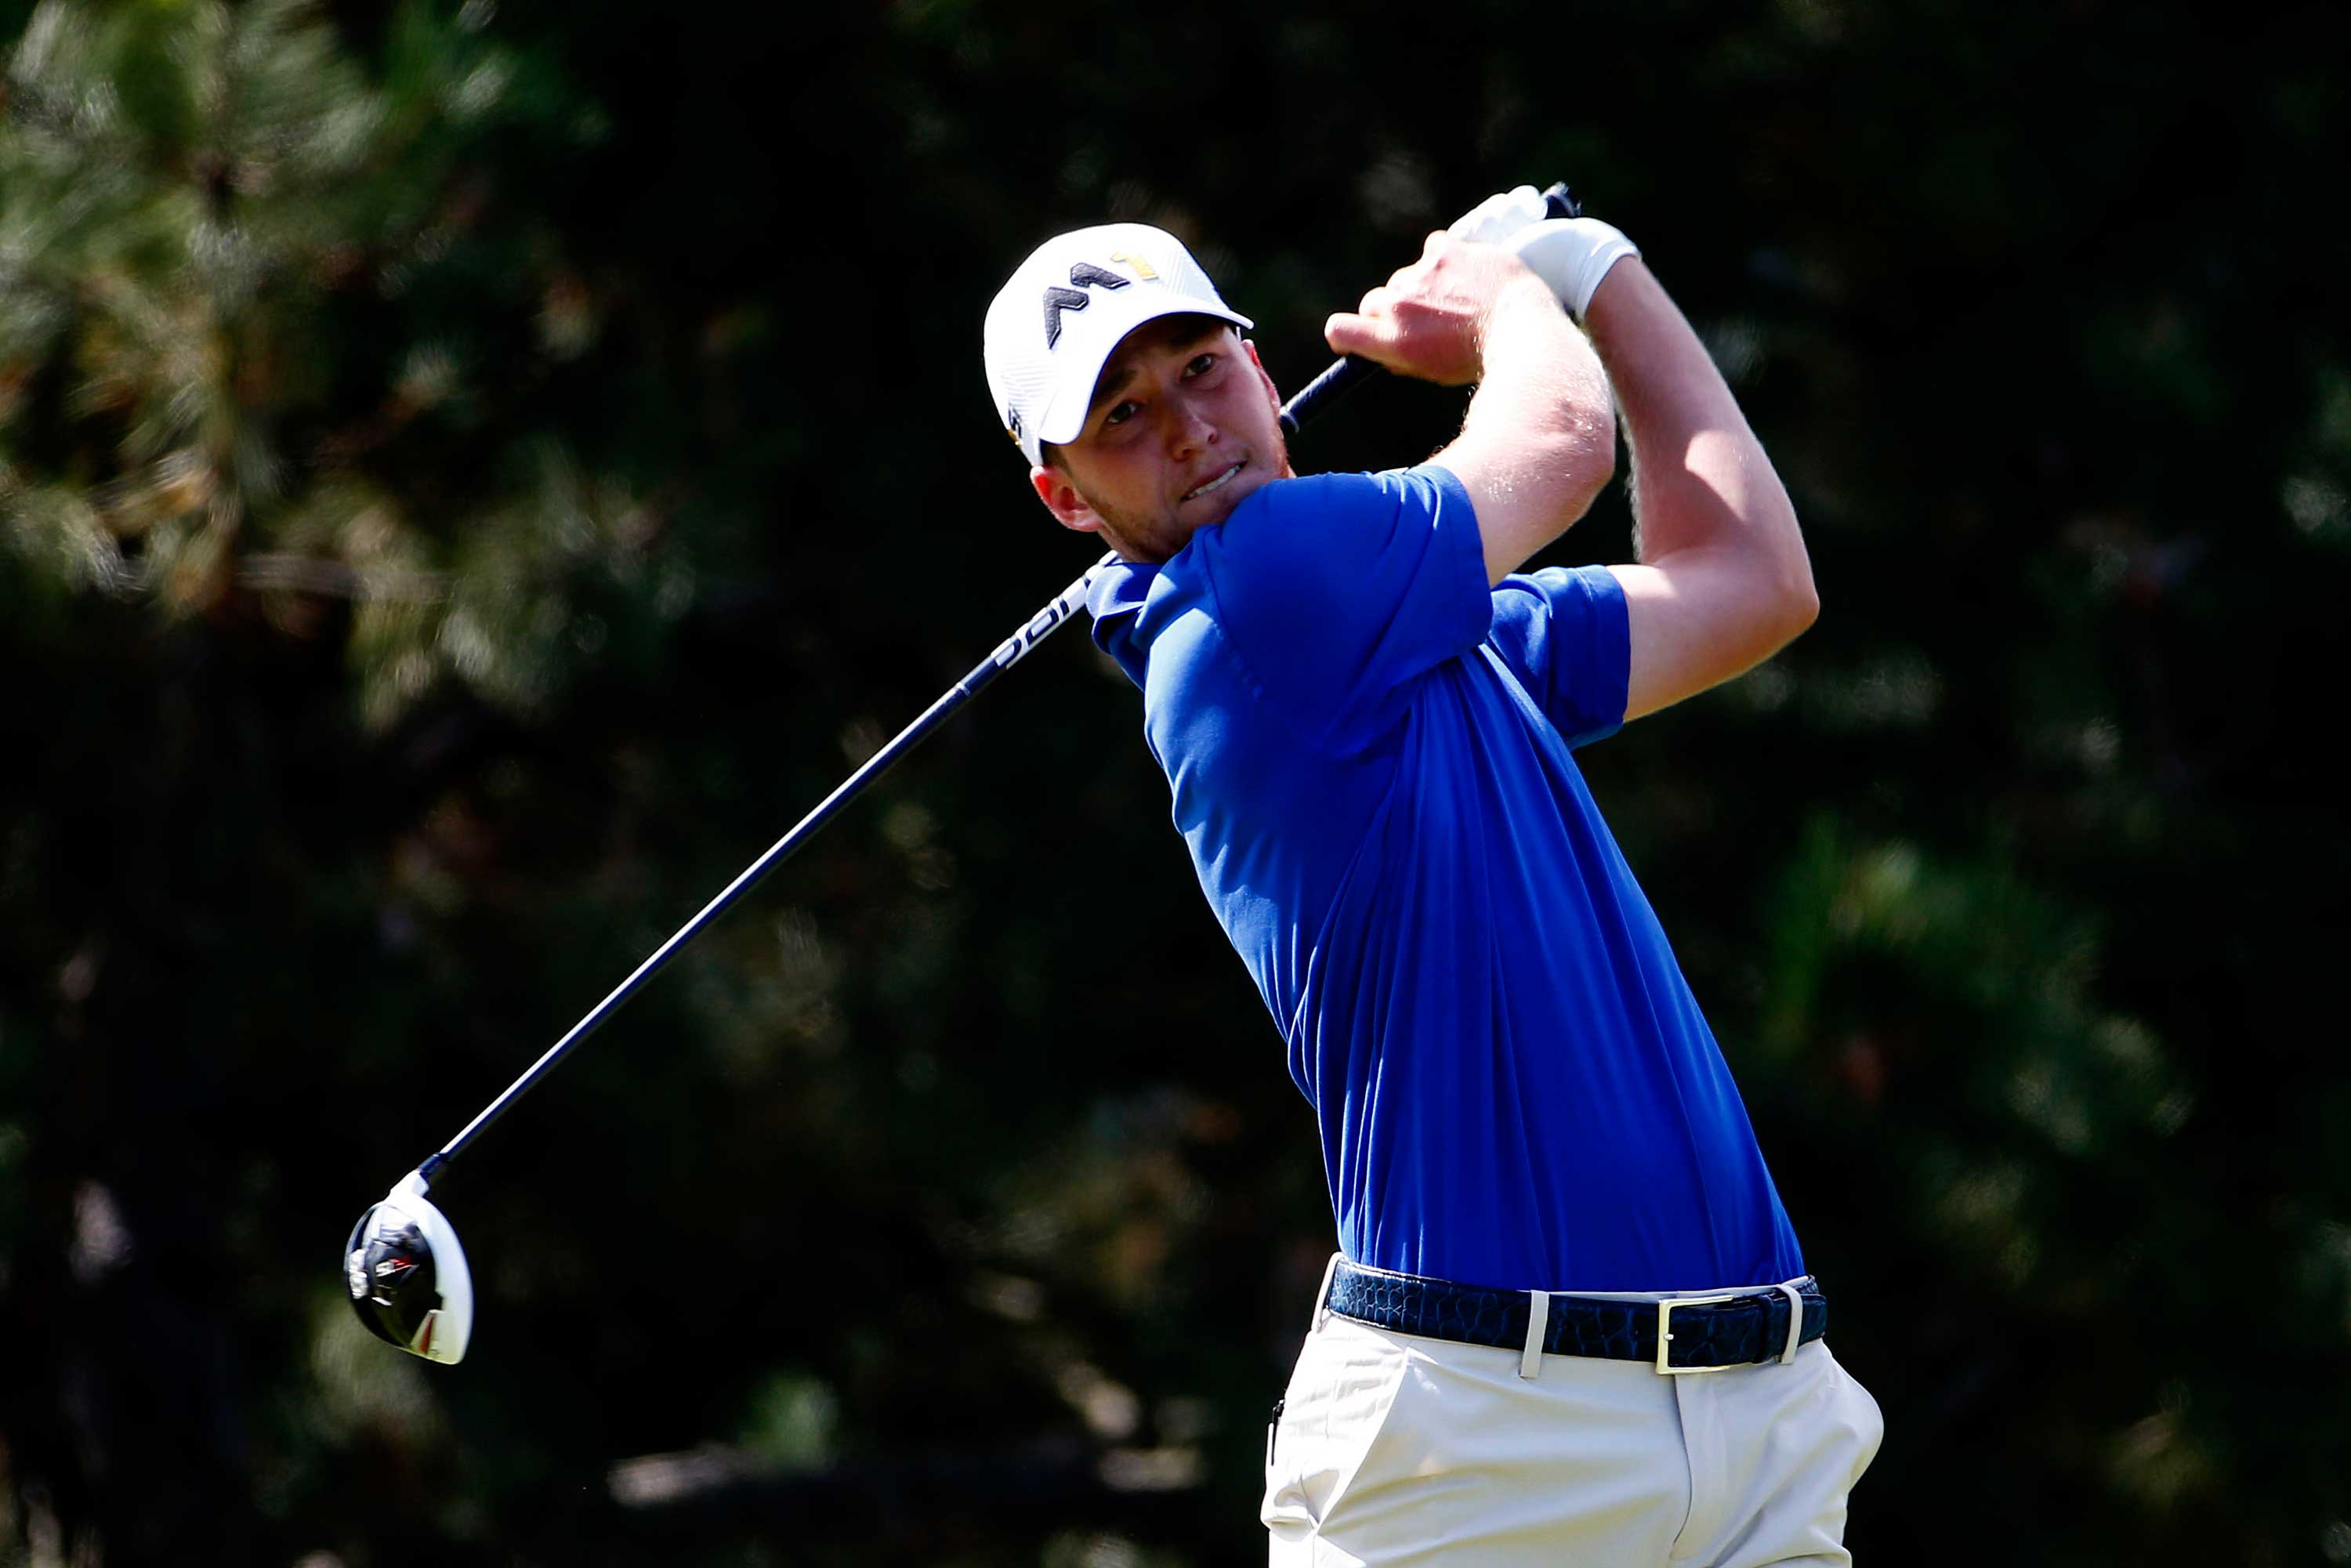 Daniel Berger finished second at last week's BMW Championship (Photo: Getty Images)